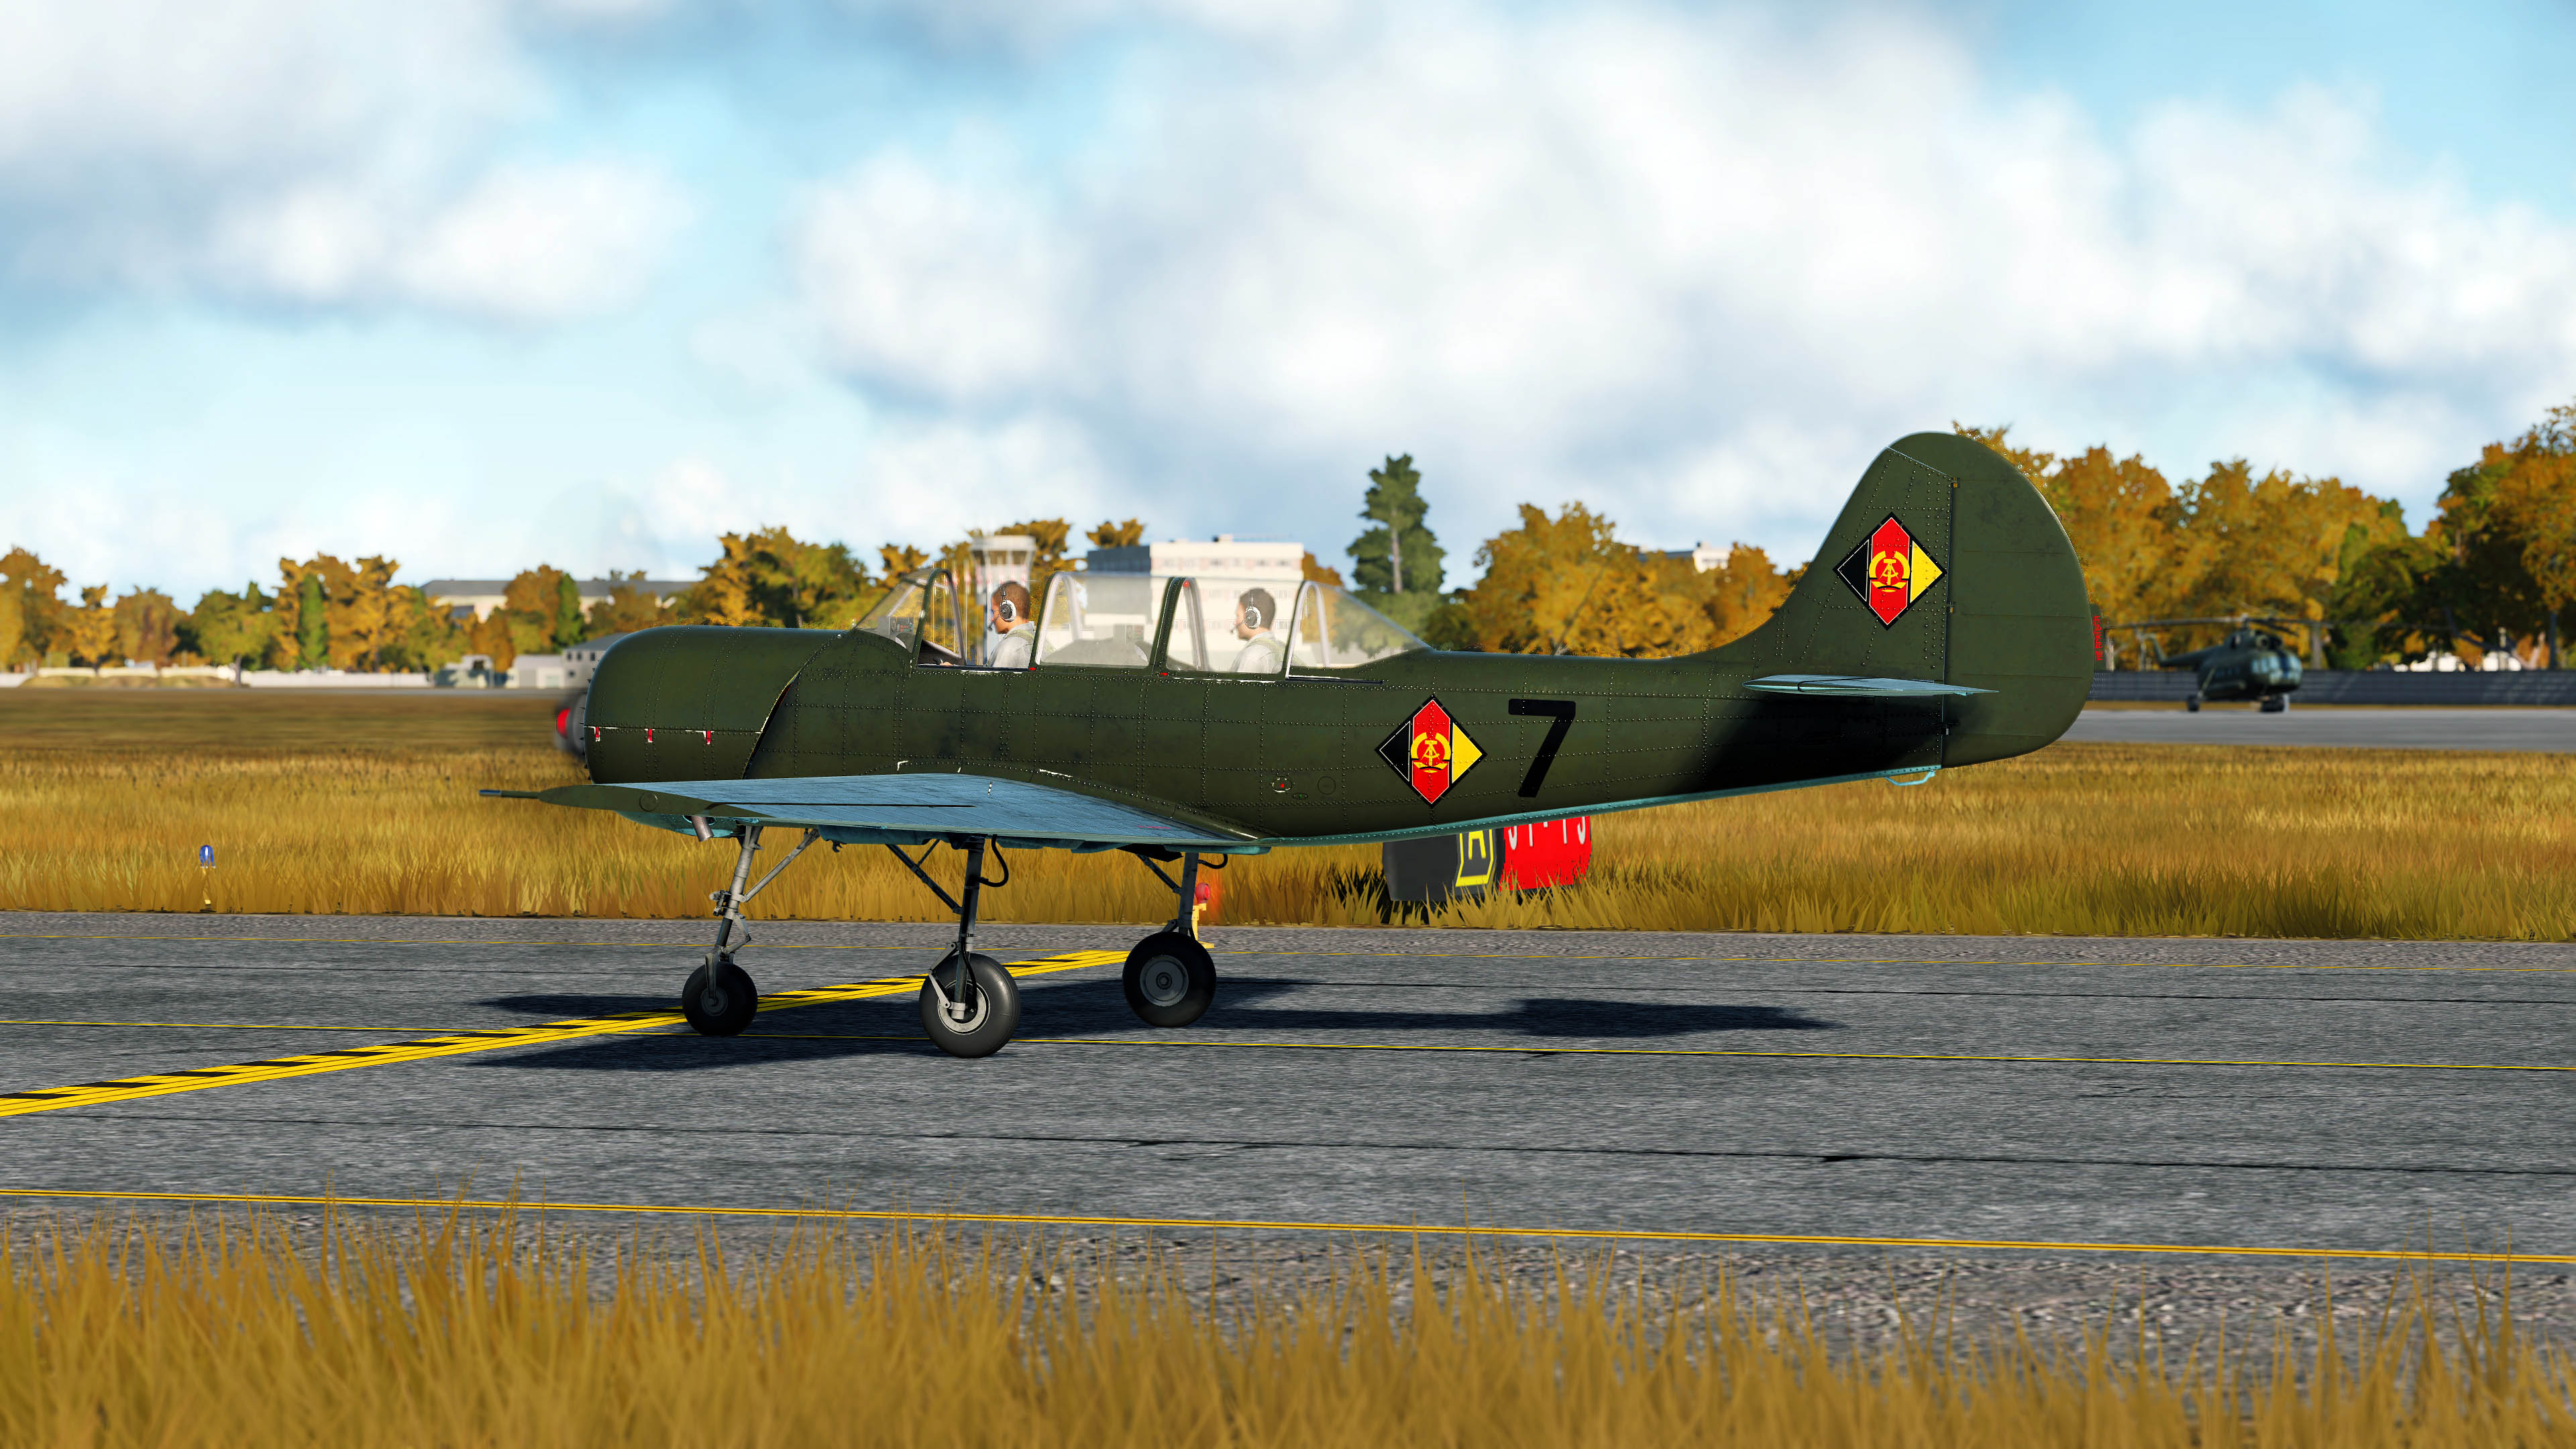 Based on an East German Yak 18A